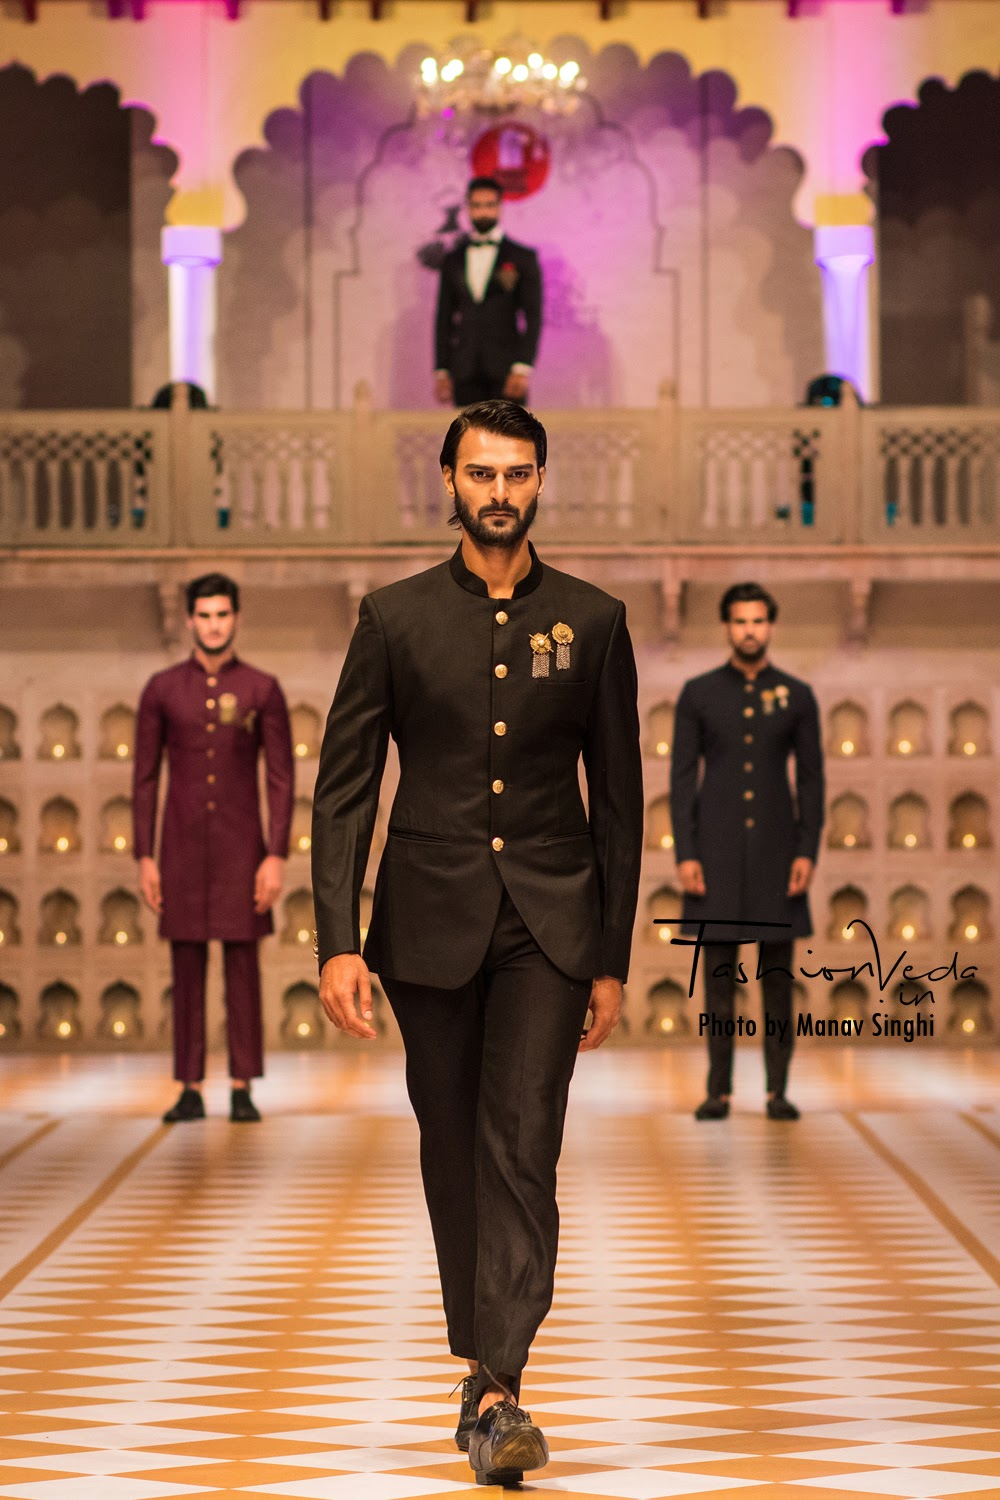 Collection by Cosa Nostraa at Fashion Connect Show, Jaipur.